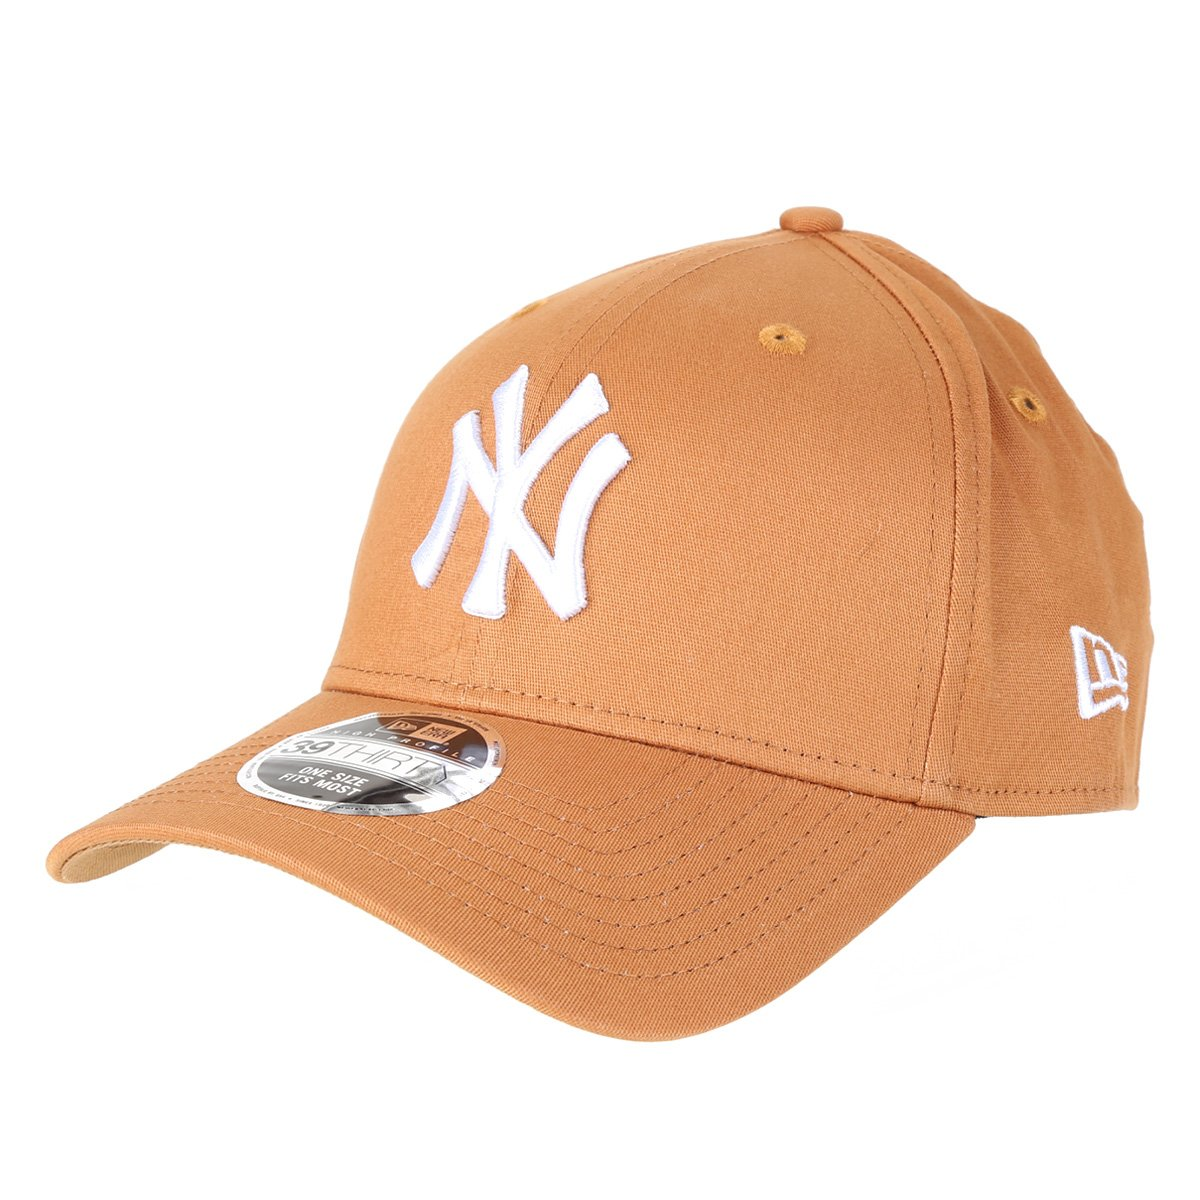 Boné New Era MBL New York Yankees Aba Curva 39Thirty